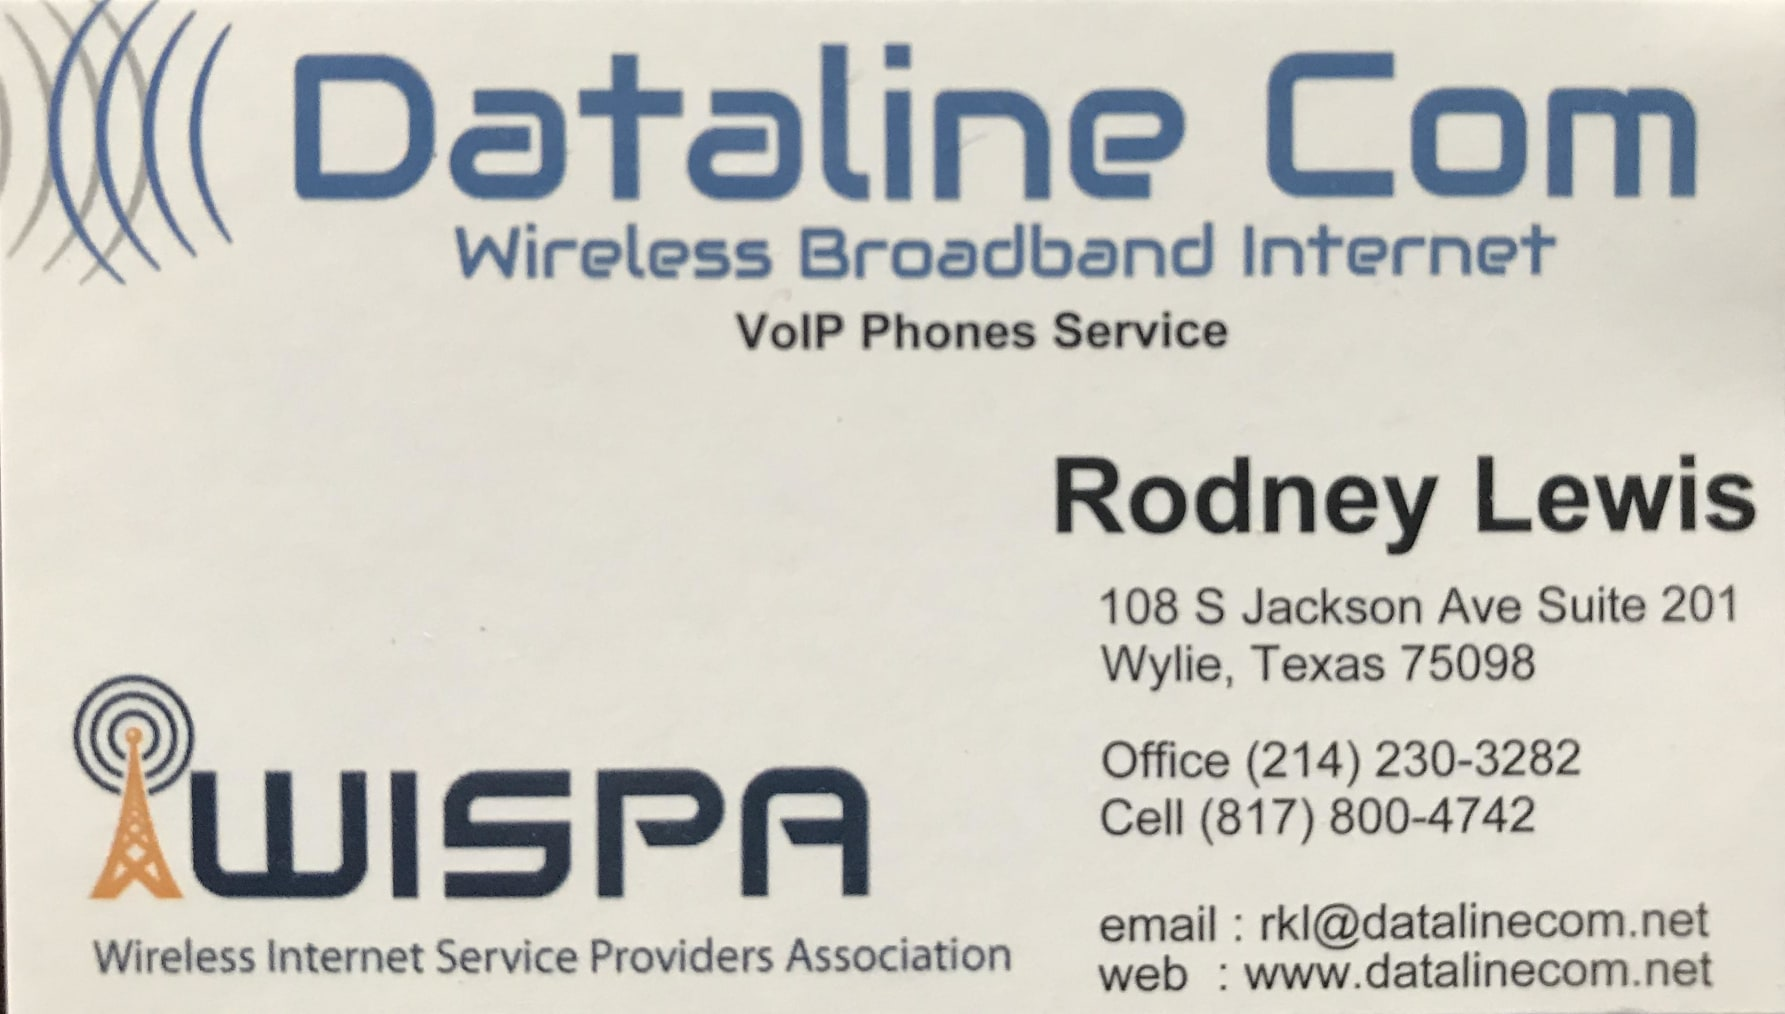 Dataline Communications - Rodney Lewis